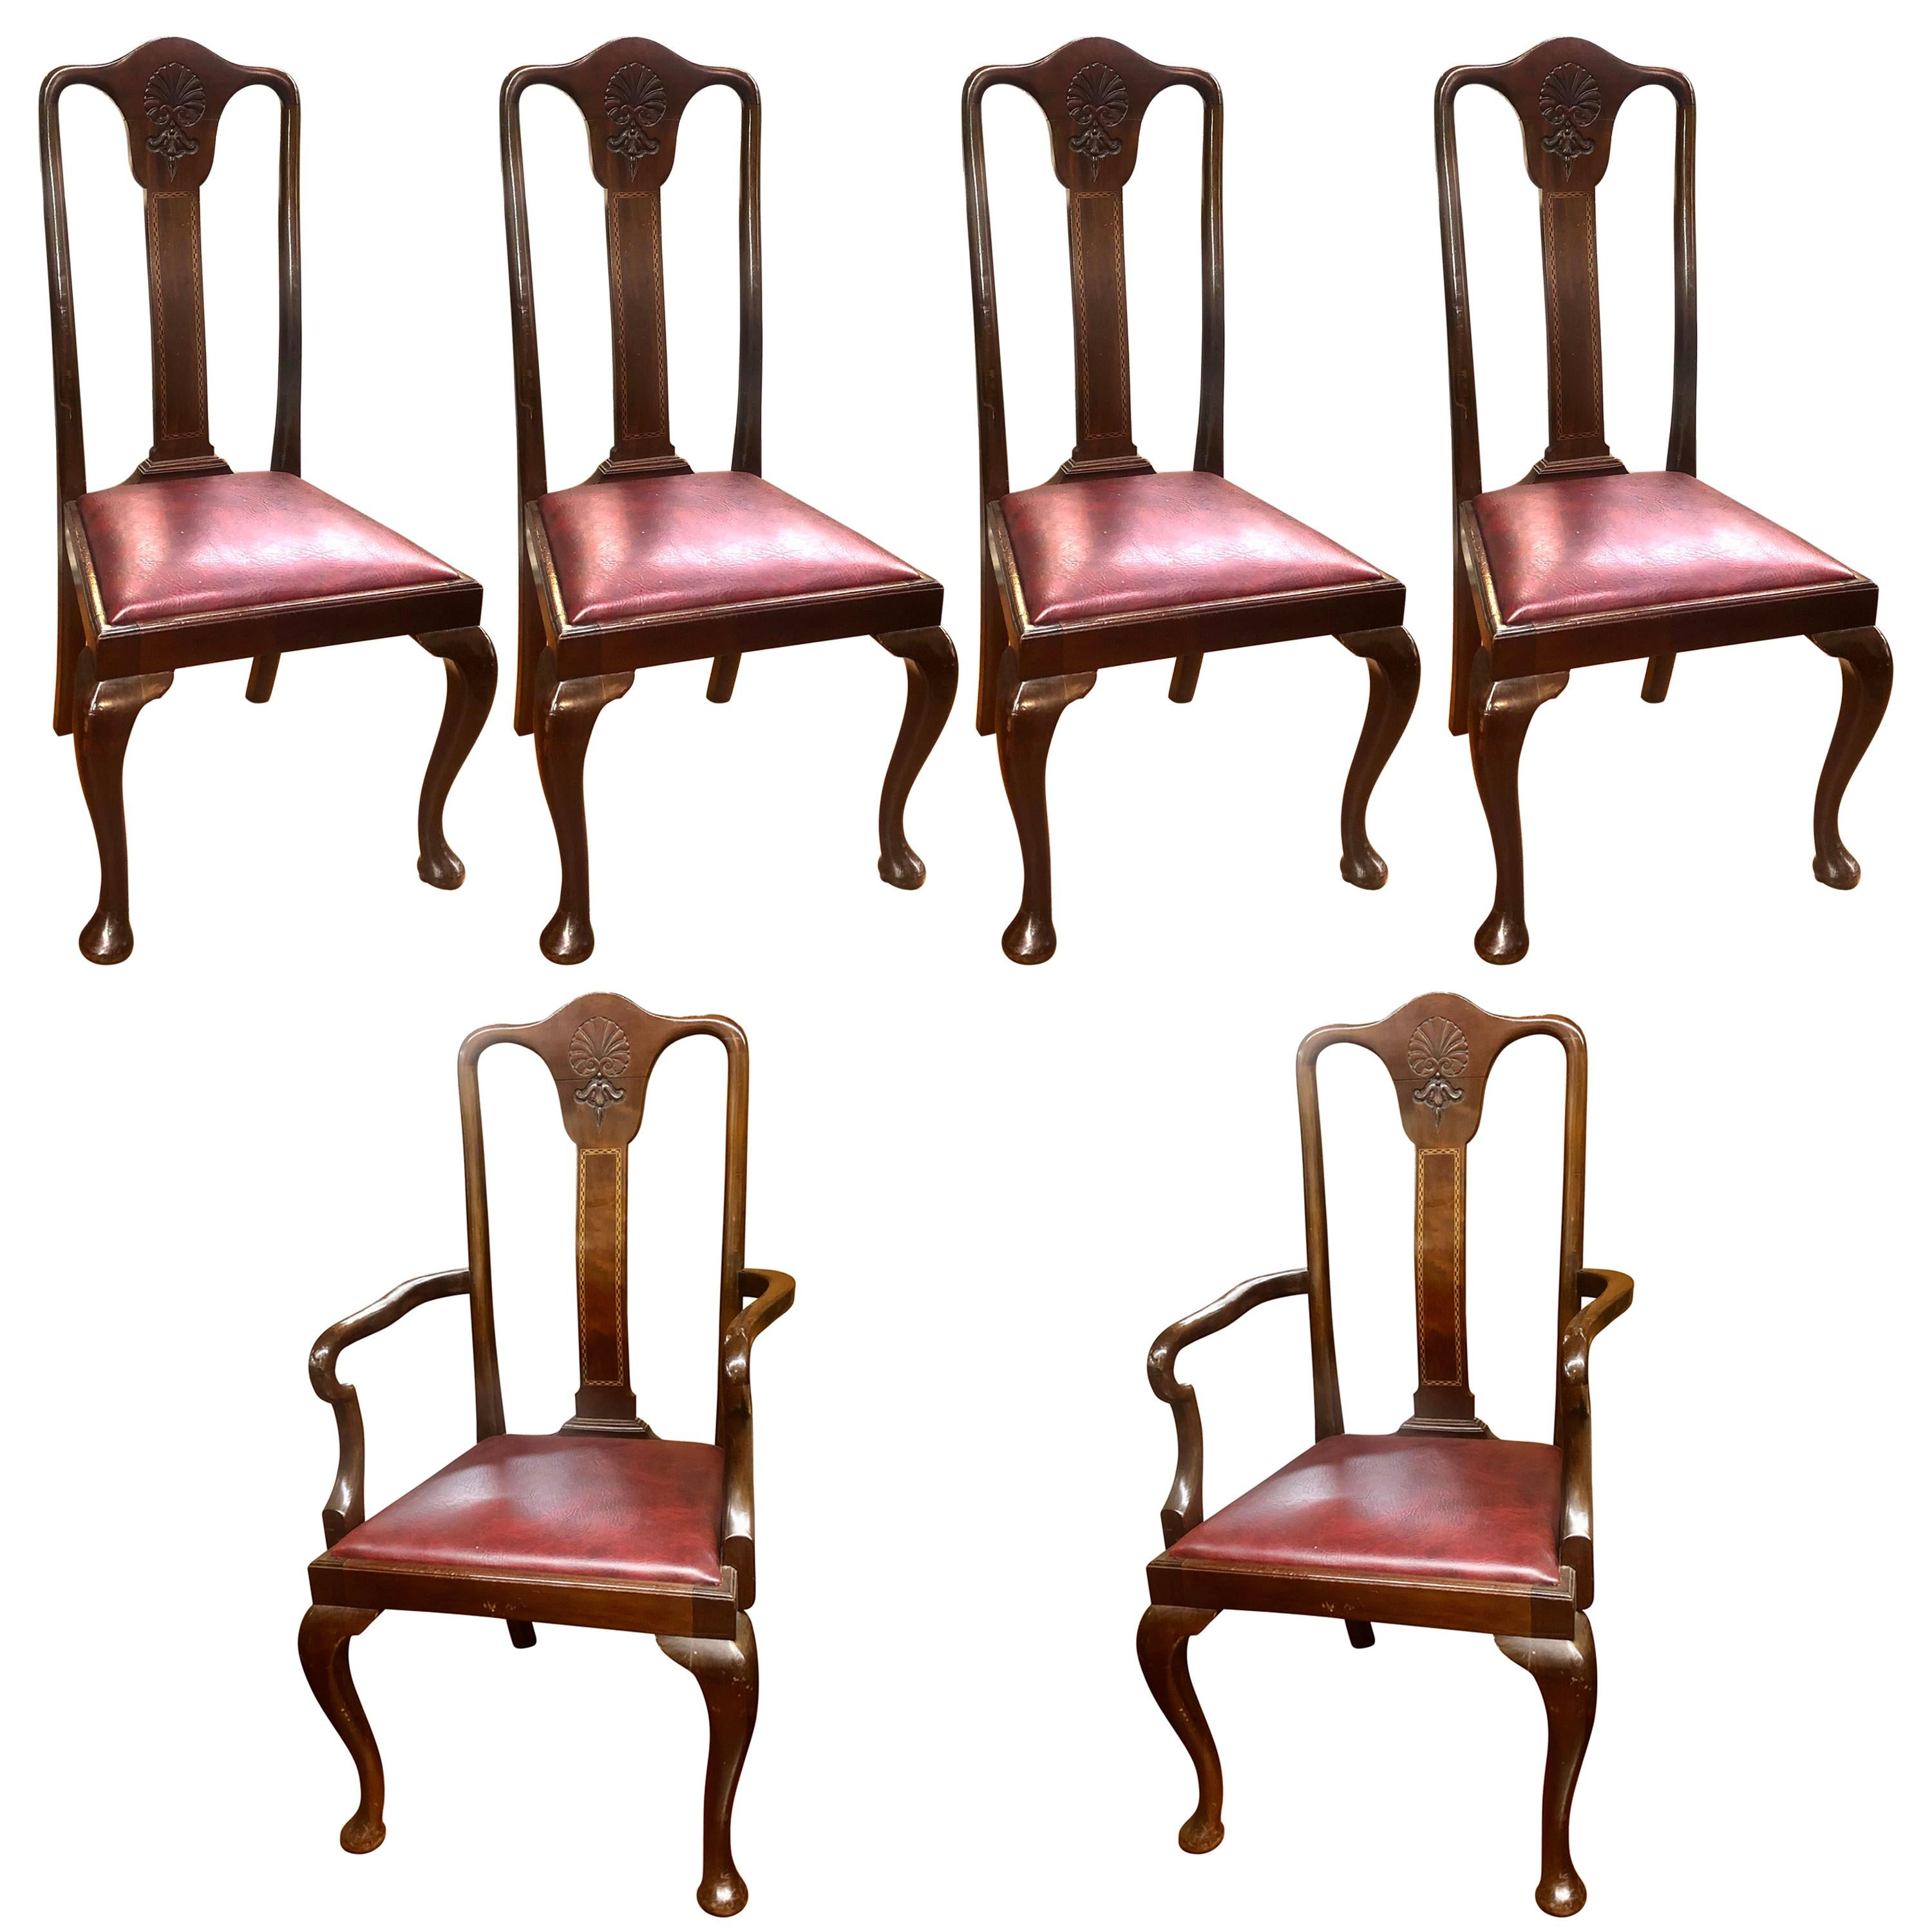 Set 6 '4+2' Antique English Inlaid Mahogany Queen Anne Style Dining Chairs